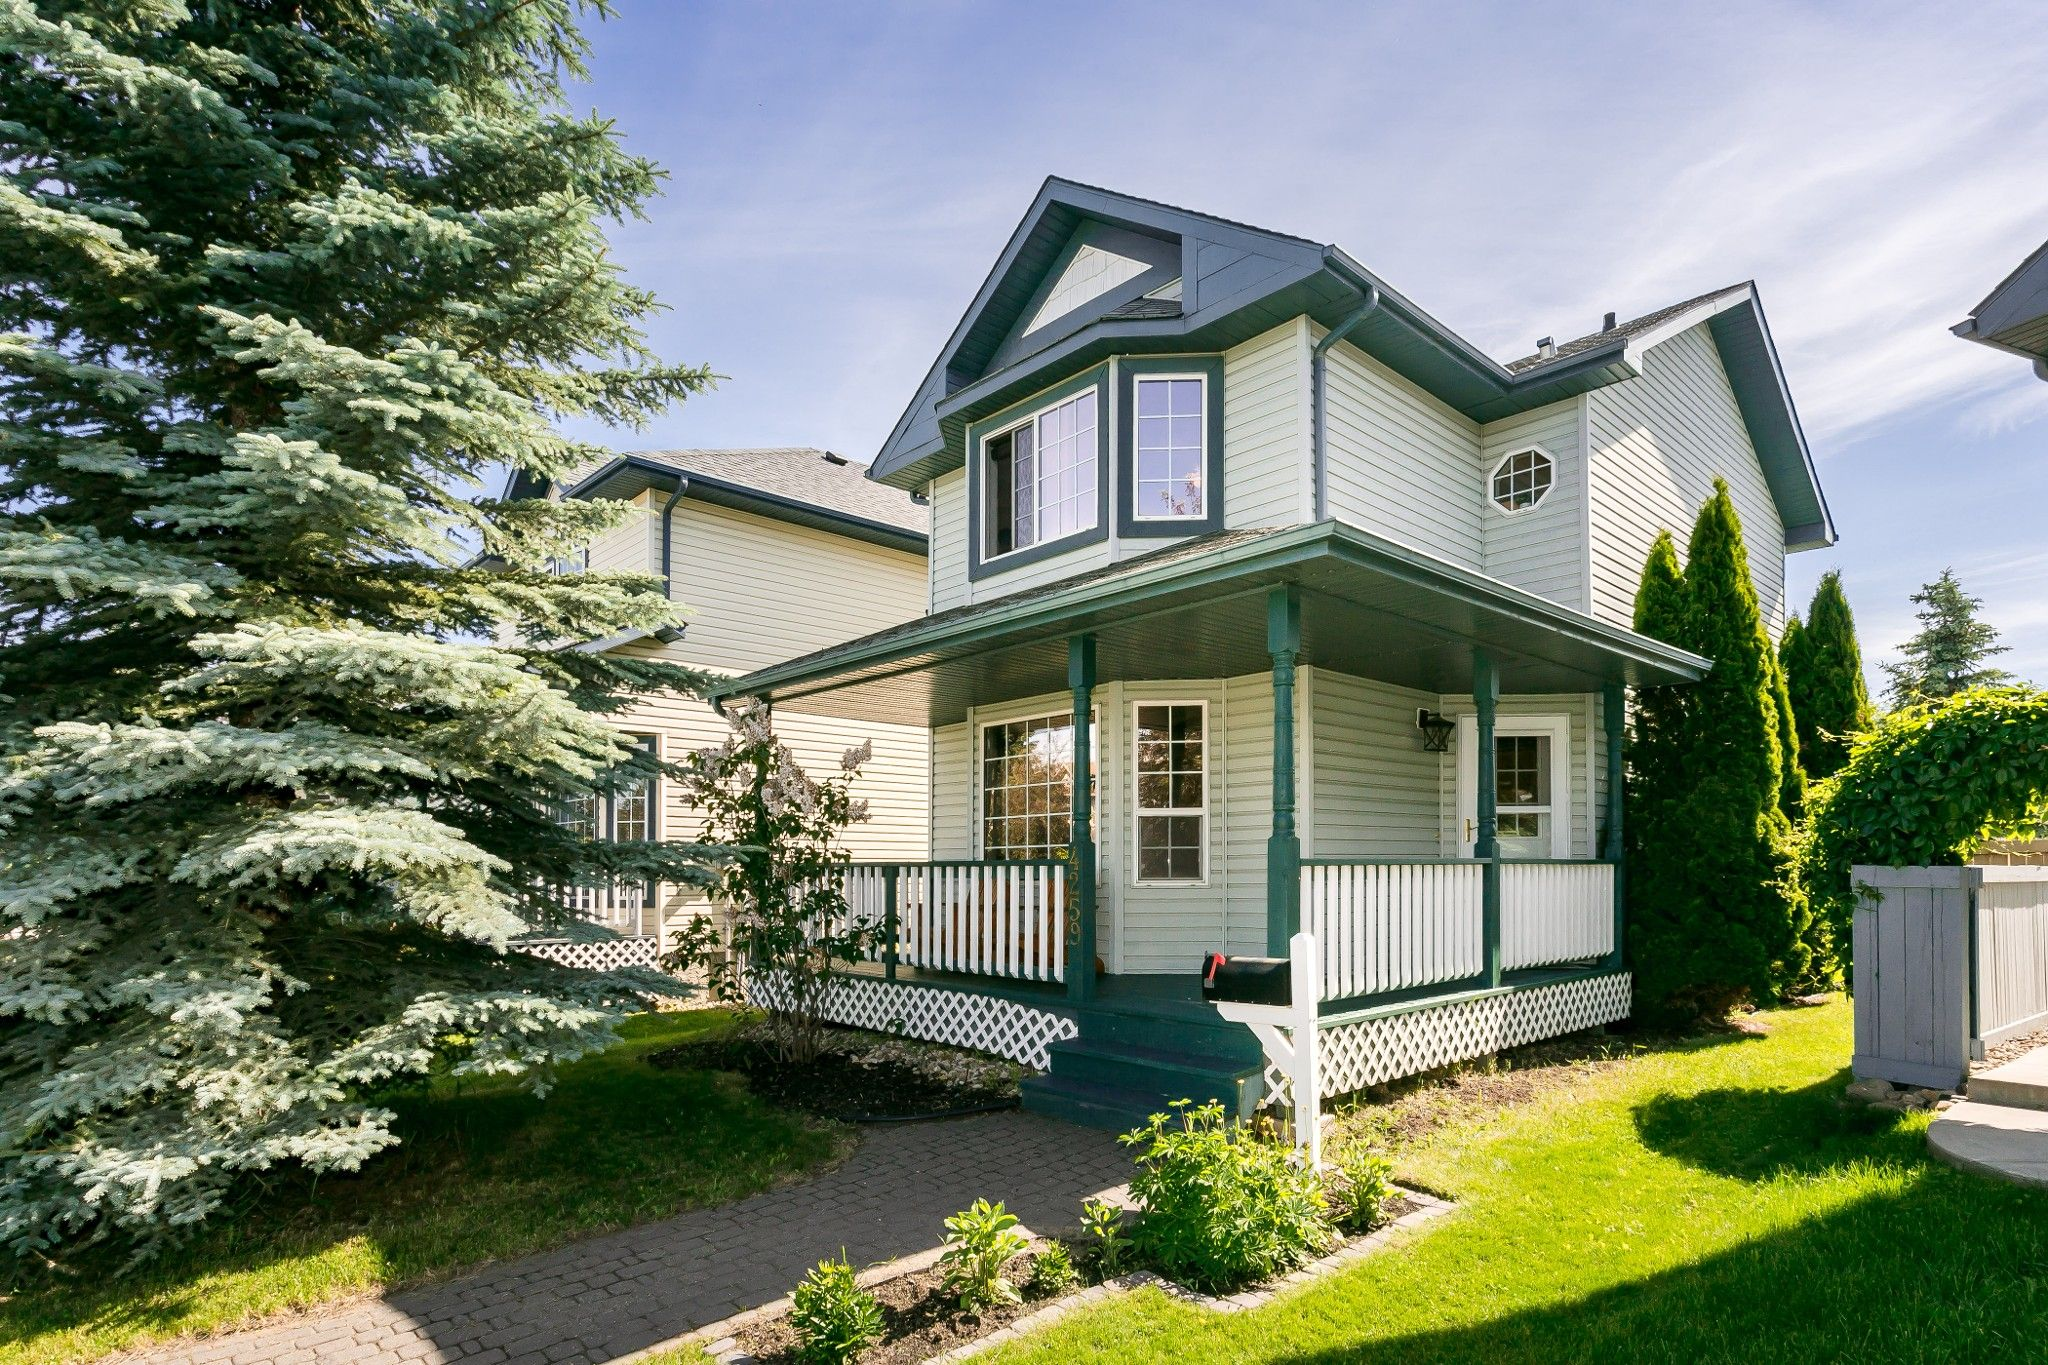 Main Photo: 4259 23St in EDMONTON: House for sale (Edmonton)  : MLS®# E4203591